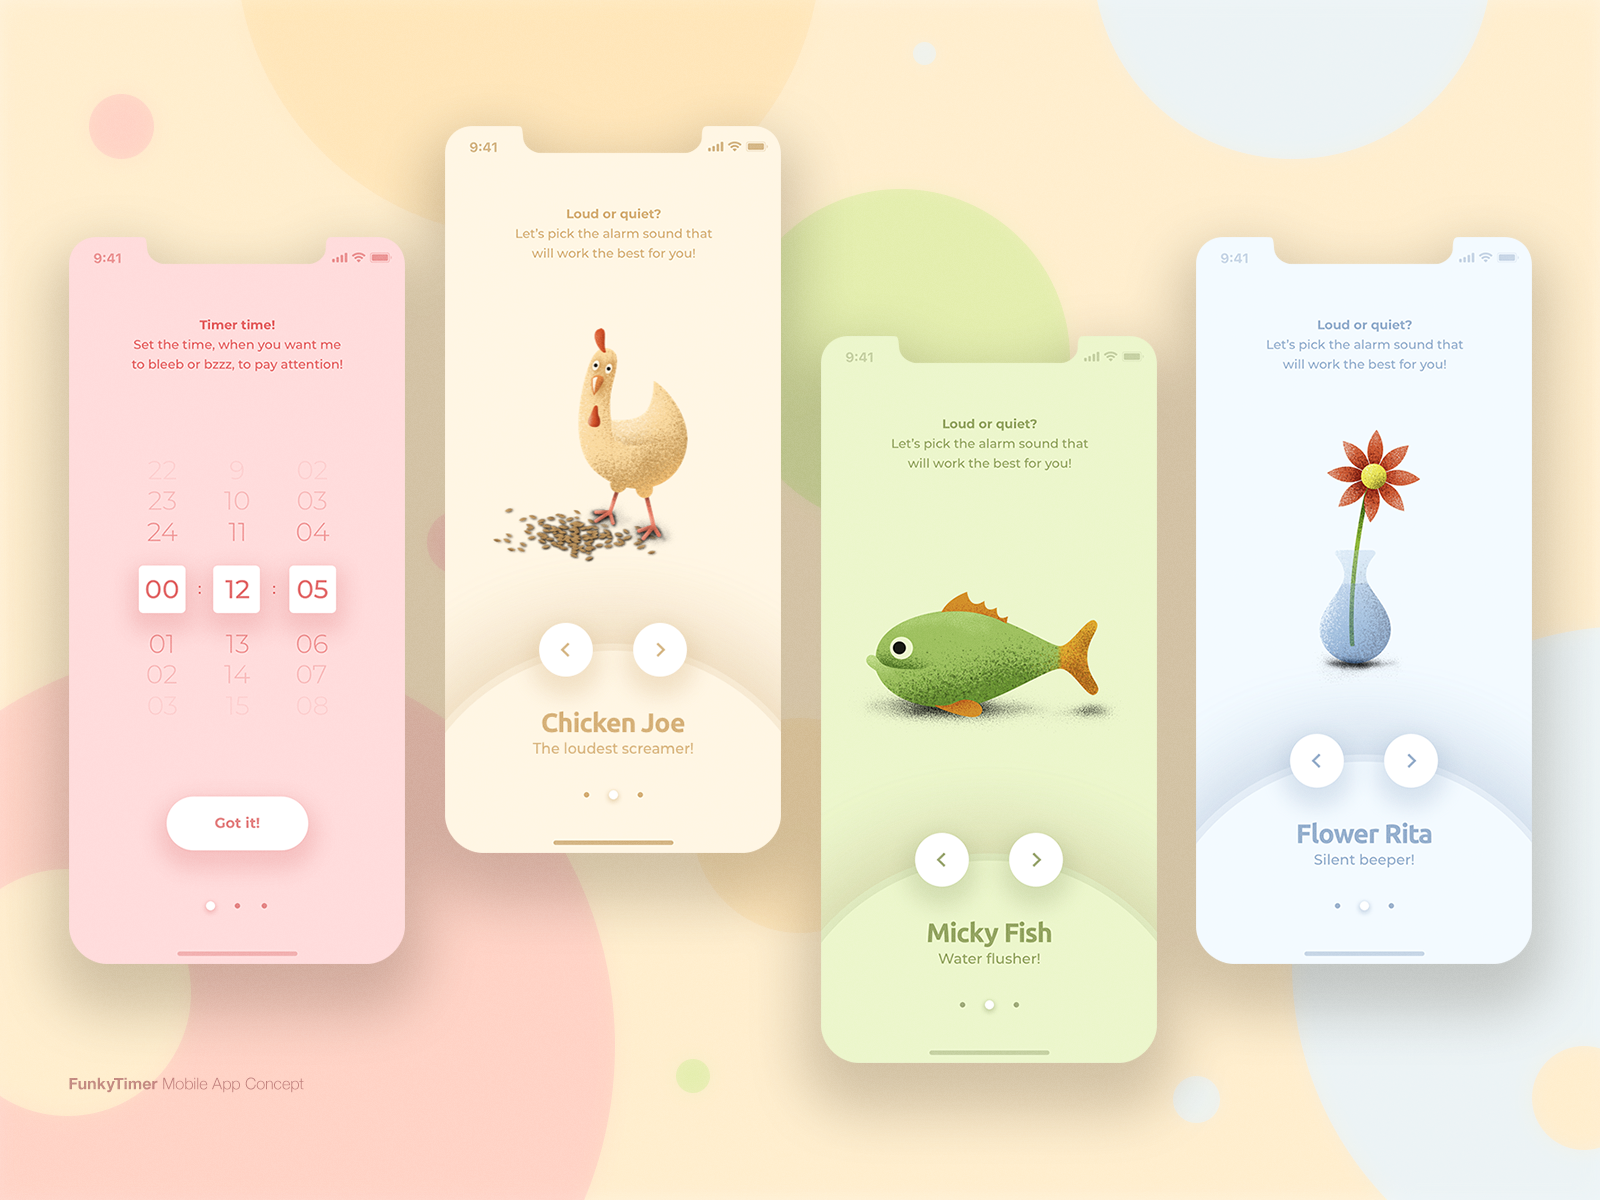 FunkyTimer / Mobile App Concept funny time timer colors apple iphone animals uidesign ux  ui ux product design mobile app user interface design user interface